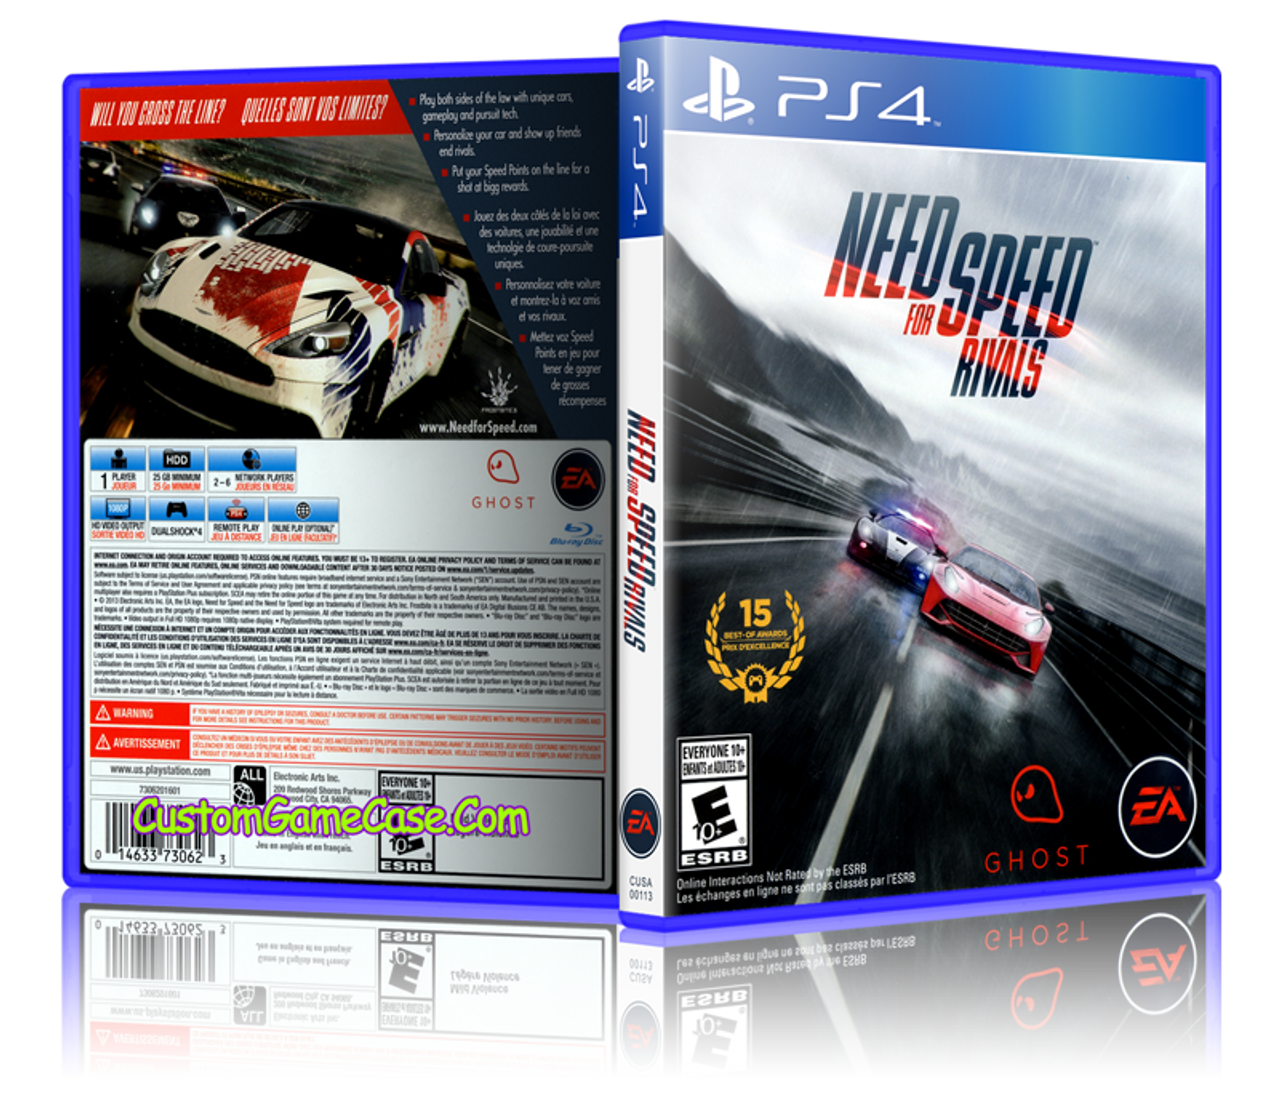 need for speed rivals sony playstation 4 ps4 empty